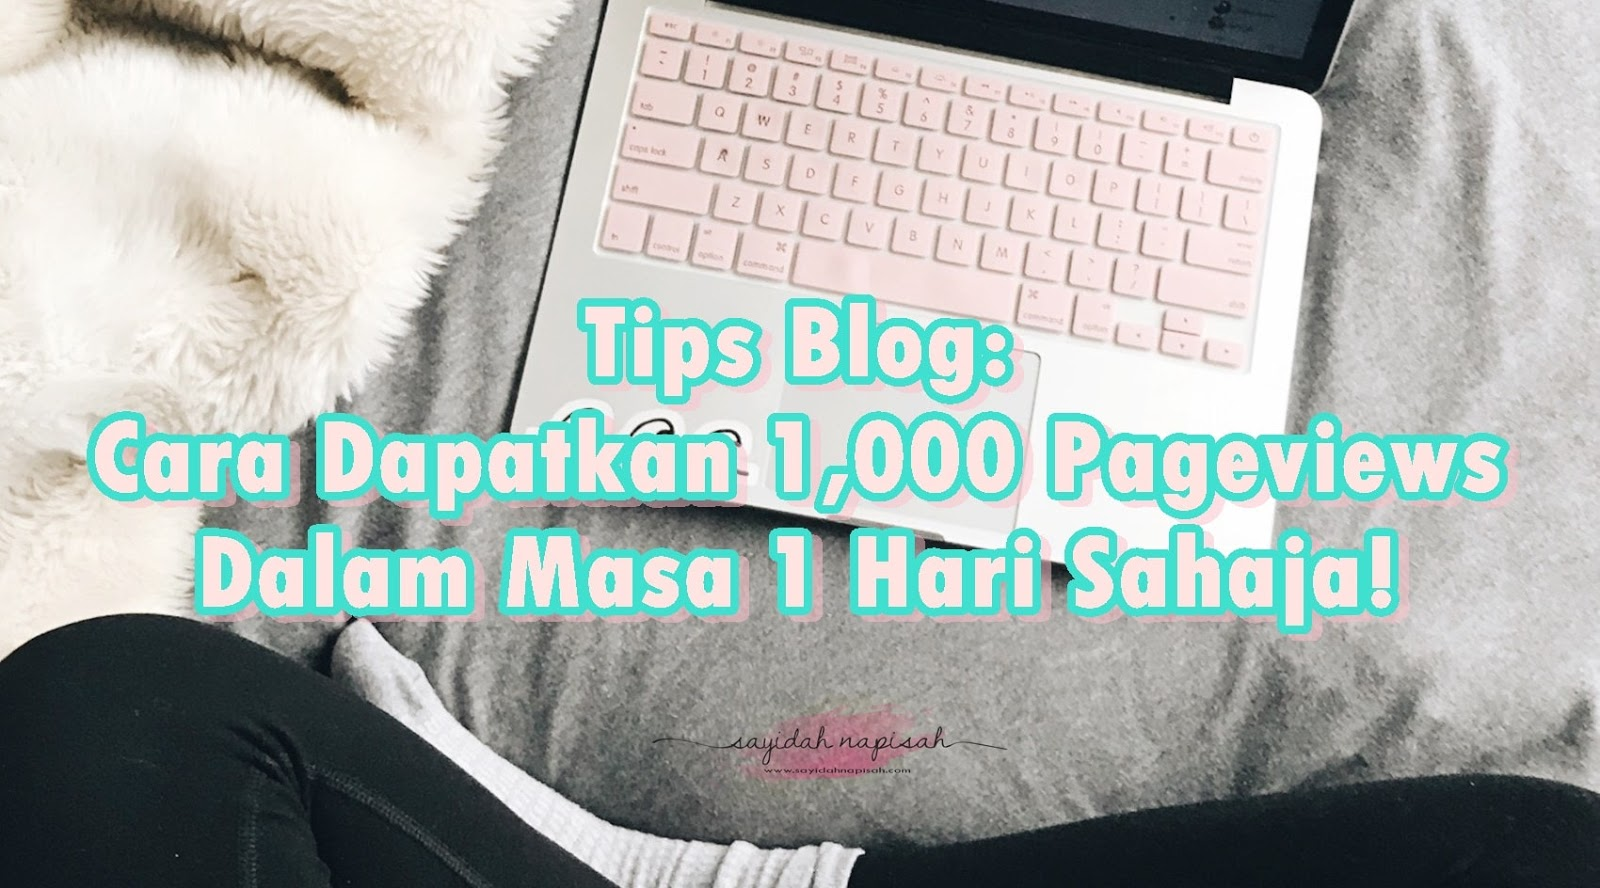 tips blog trafik tinggi